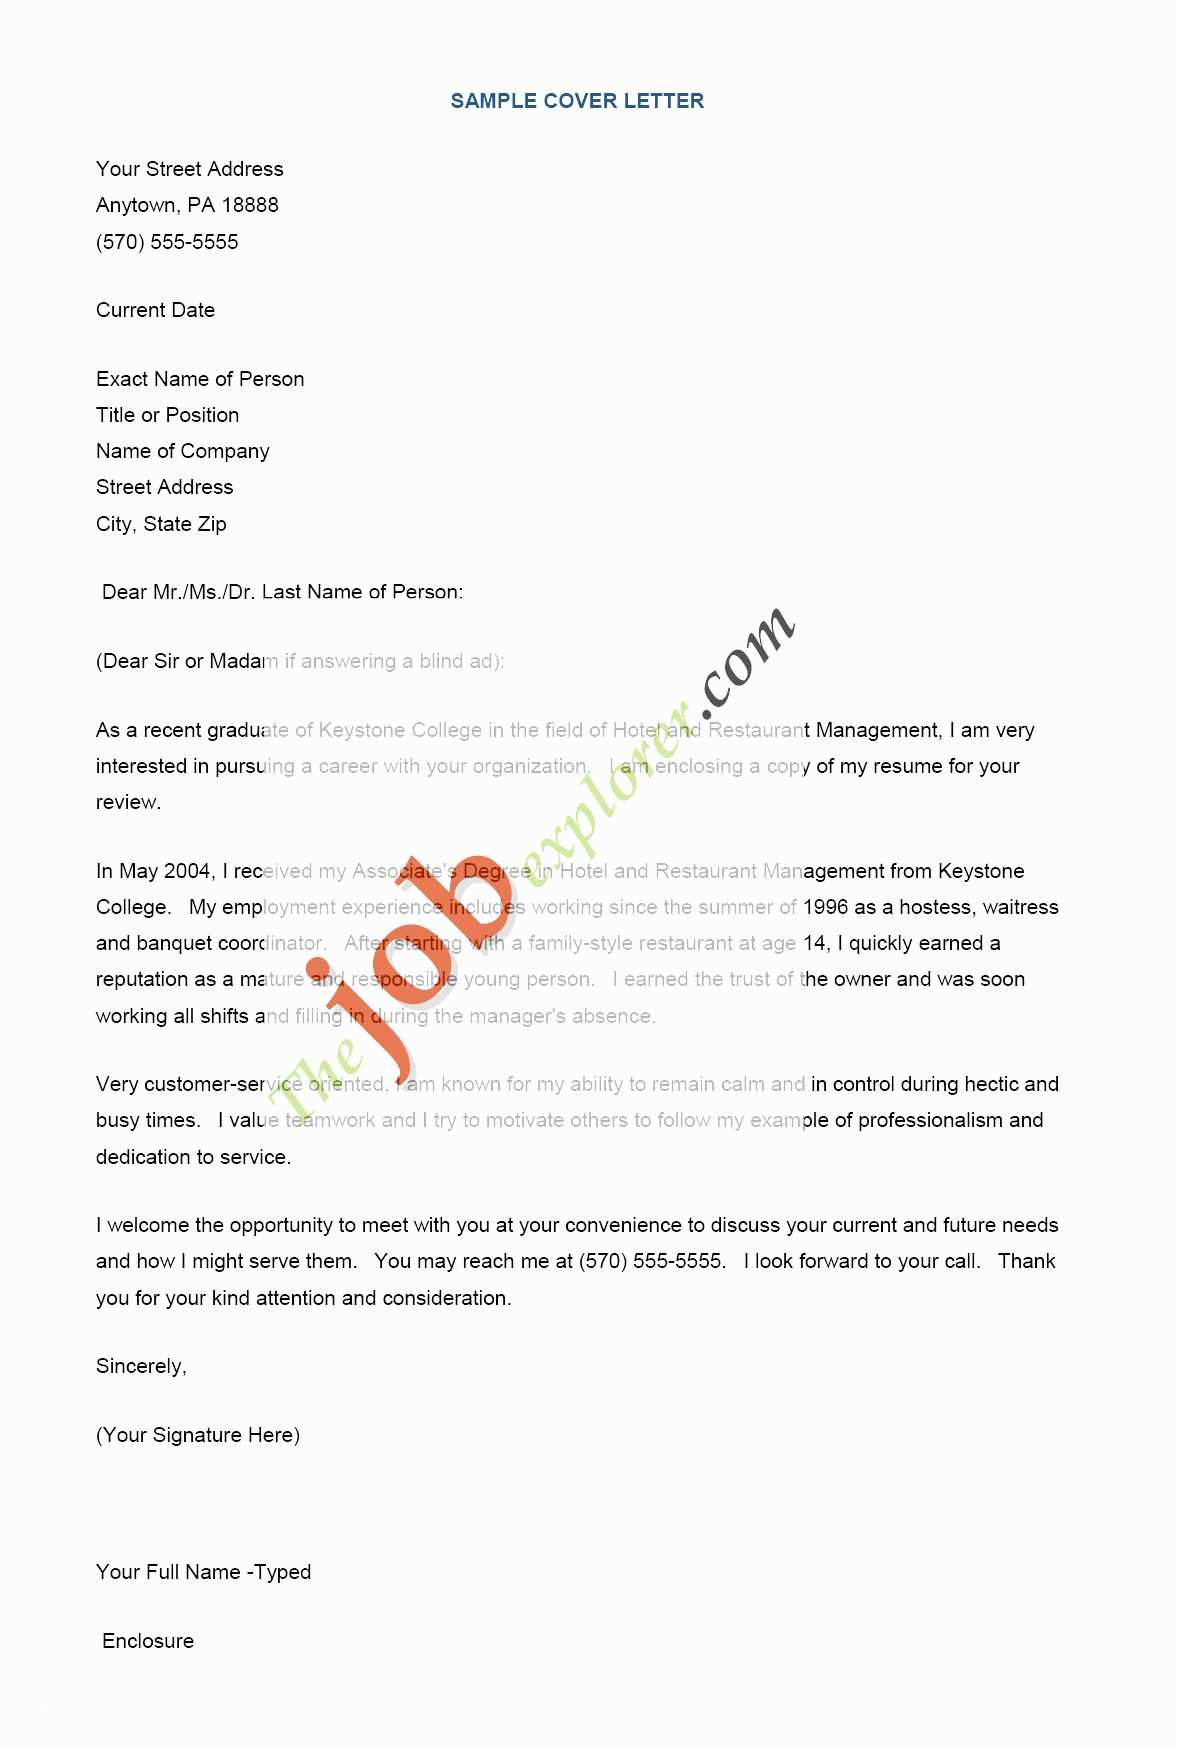 Executive Cover Letter Template - Resume and Cover Letter Template Fresh Best Cover Letter Lovely